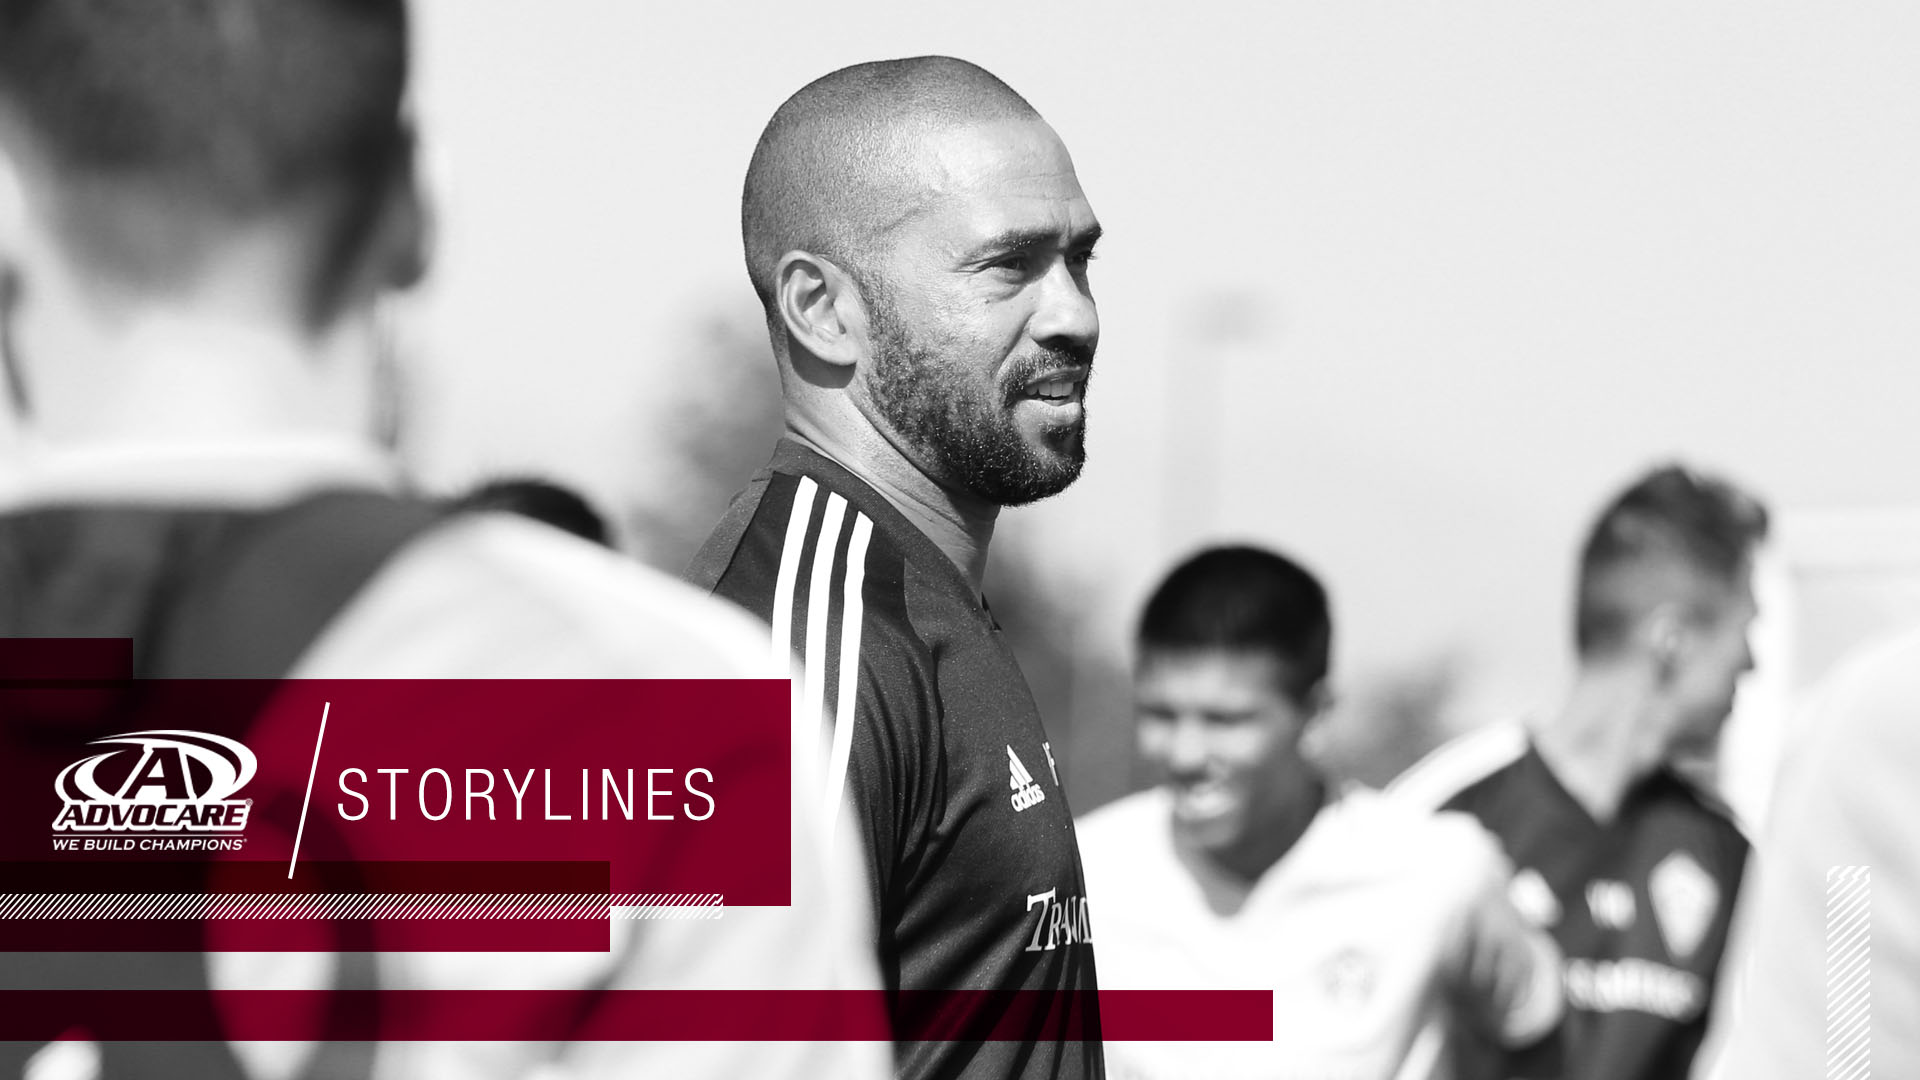 New York Red Bulls vs Colorado Rapids AdvoCare Storylines 1920x1080